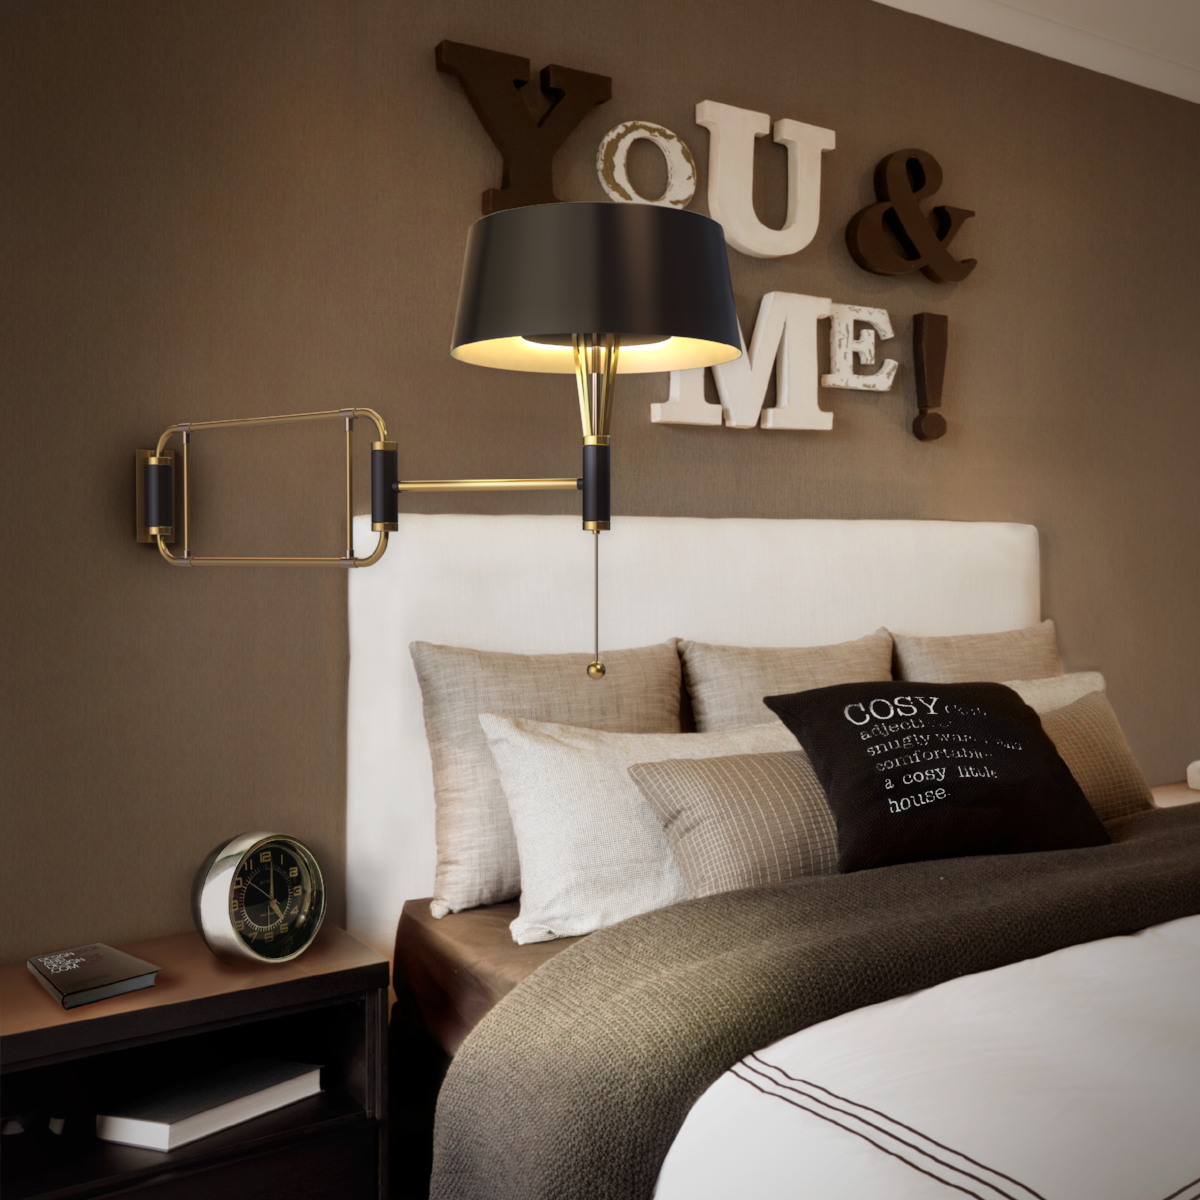 3 Ways You Can Use Wall Lamps To Have An Irresistible Decor 6